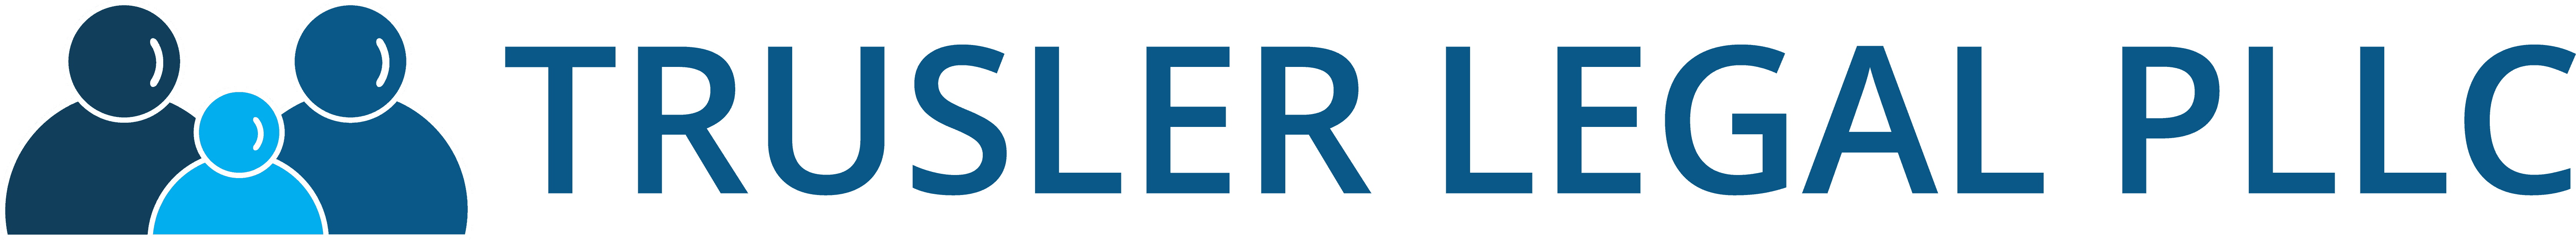 Trusler Legal Logo